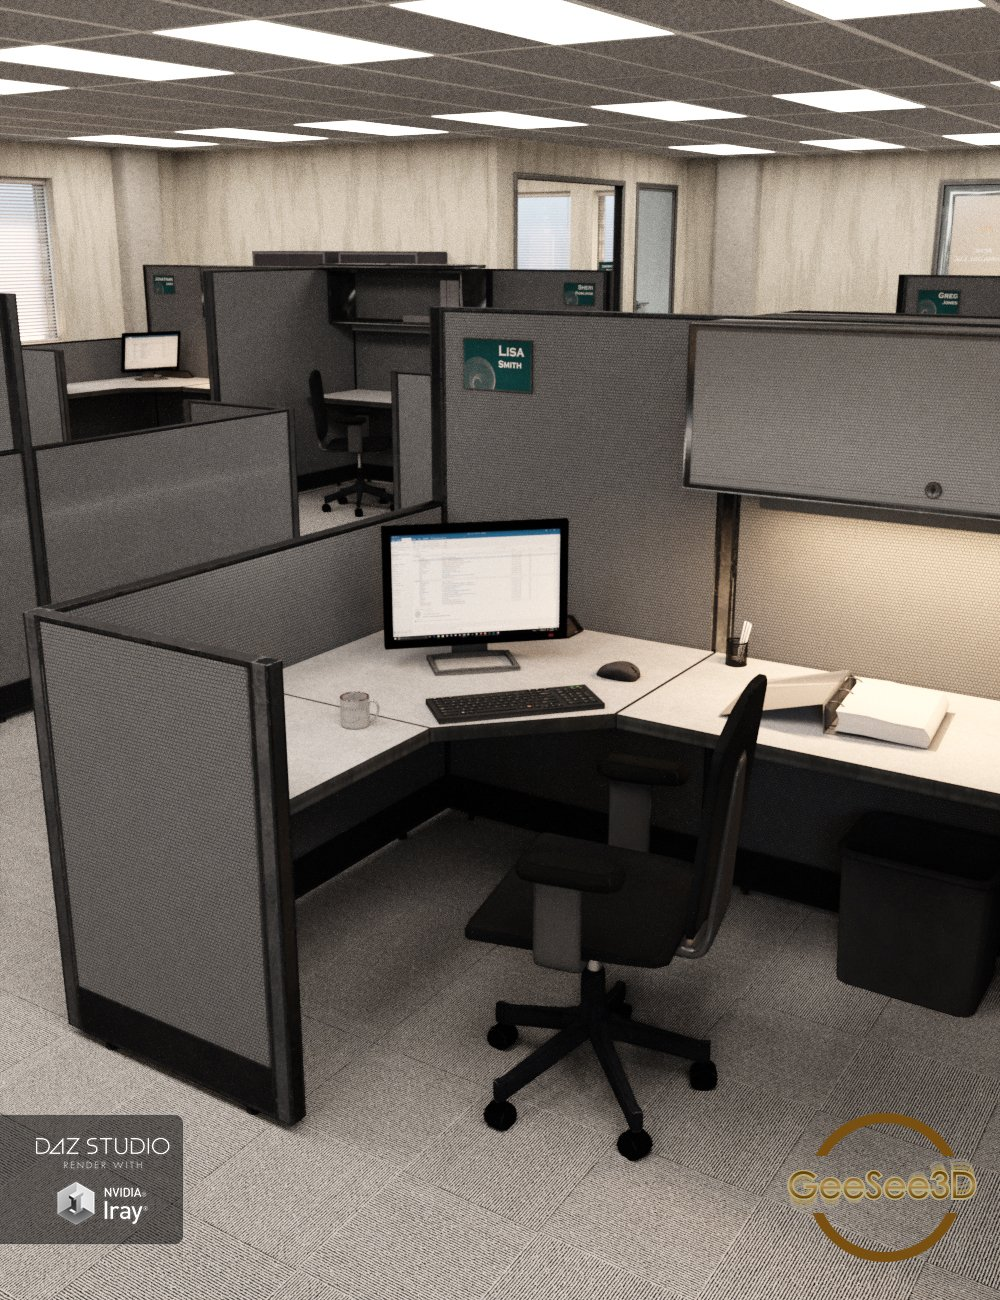 The Daily Routine Office by: GeeSee3D, 3D Models by Daz 3D